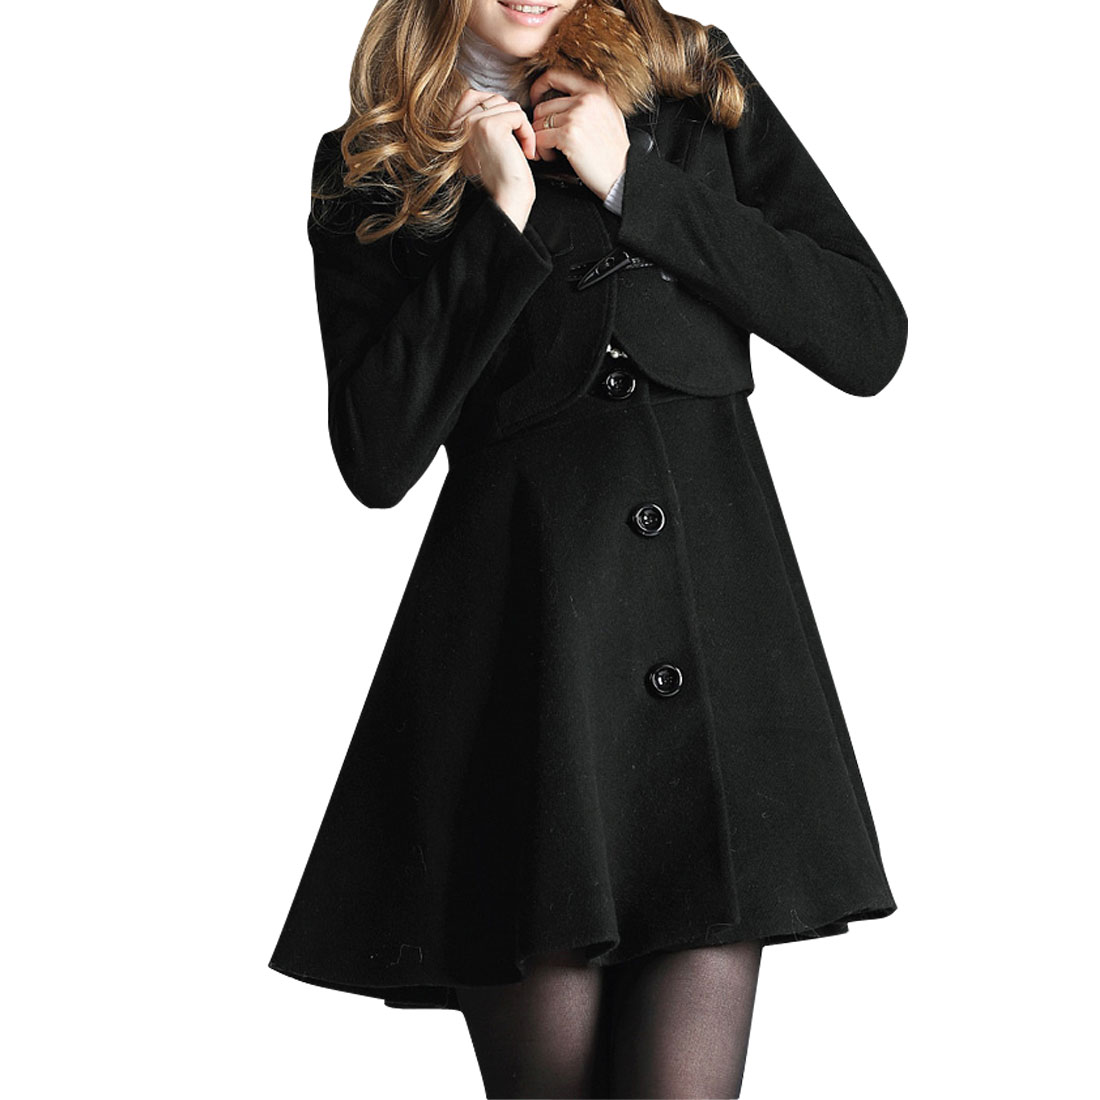 Ladies Black Long Sleeves Blazer w Single Breasted Tank Dress XS